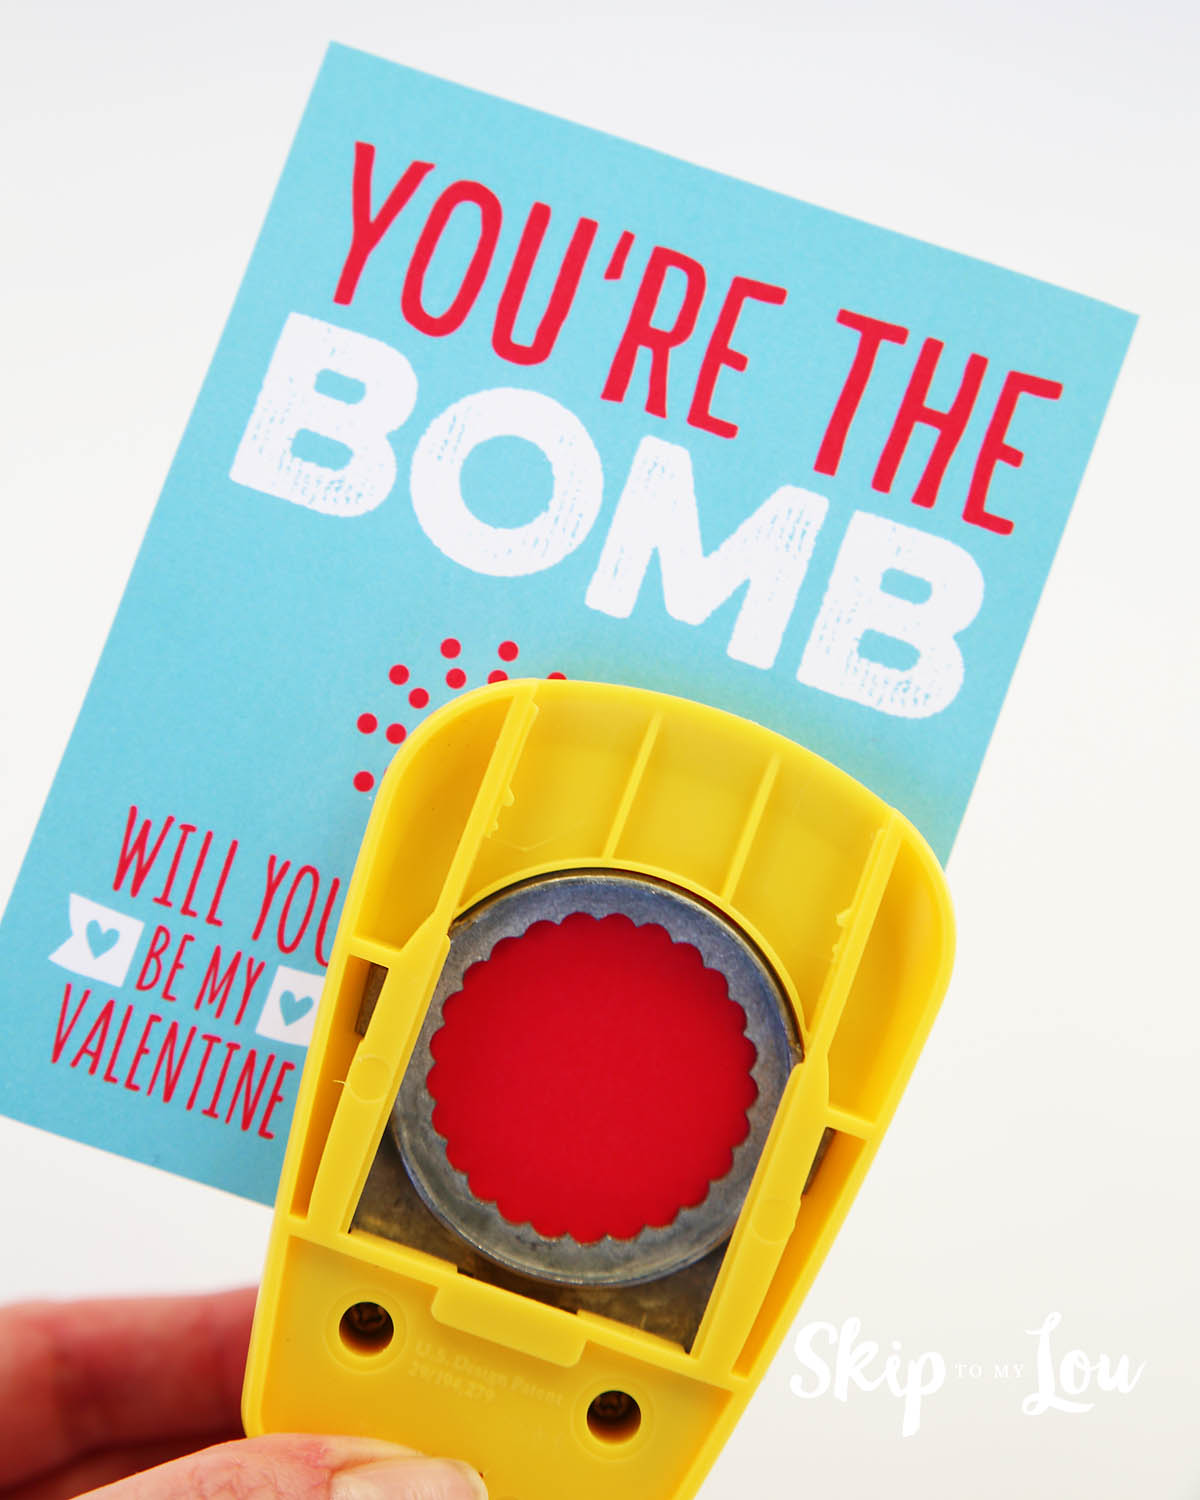 youre the bomb eos valentine gift